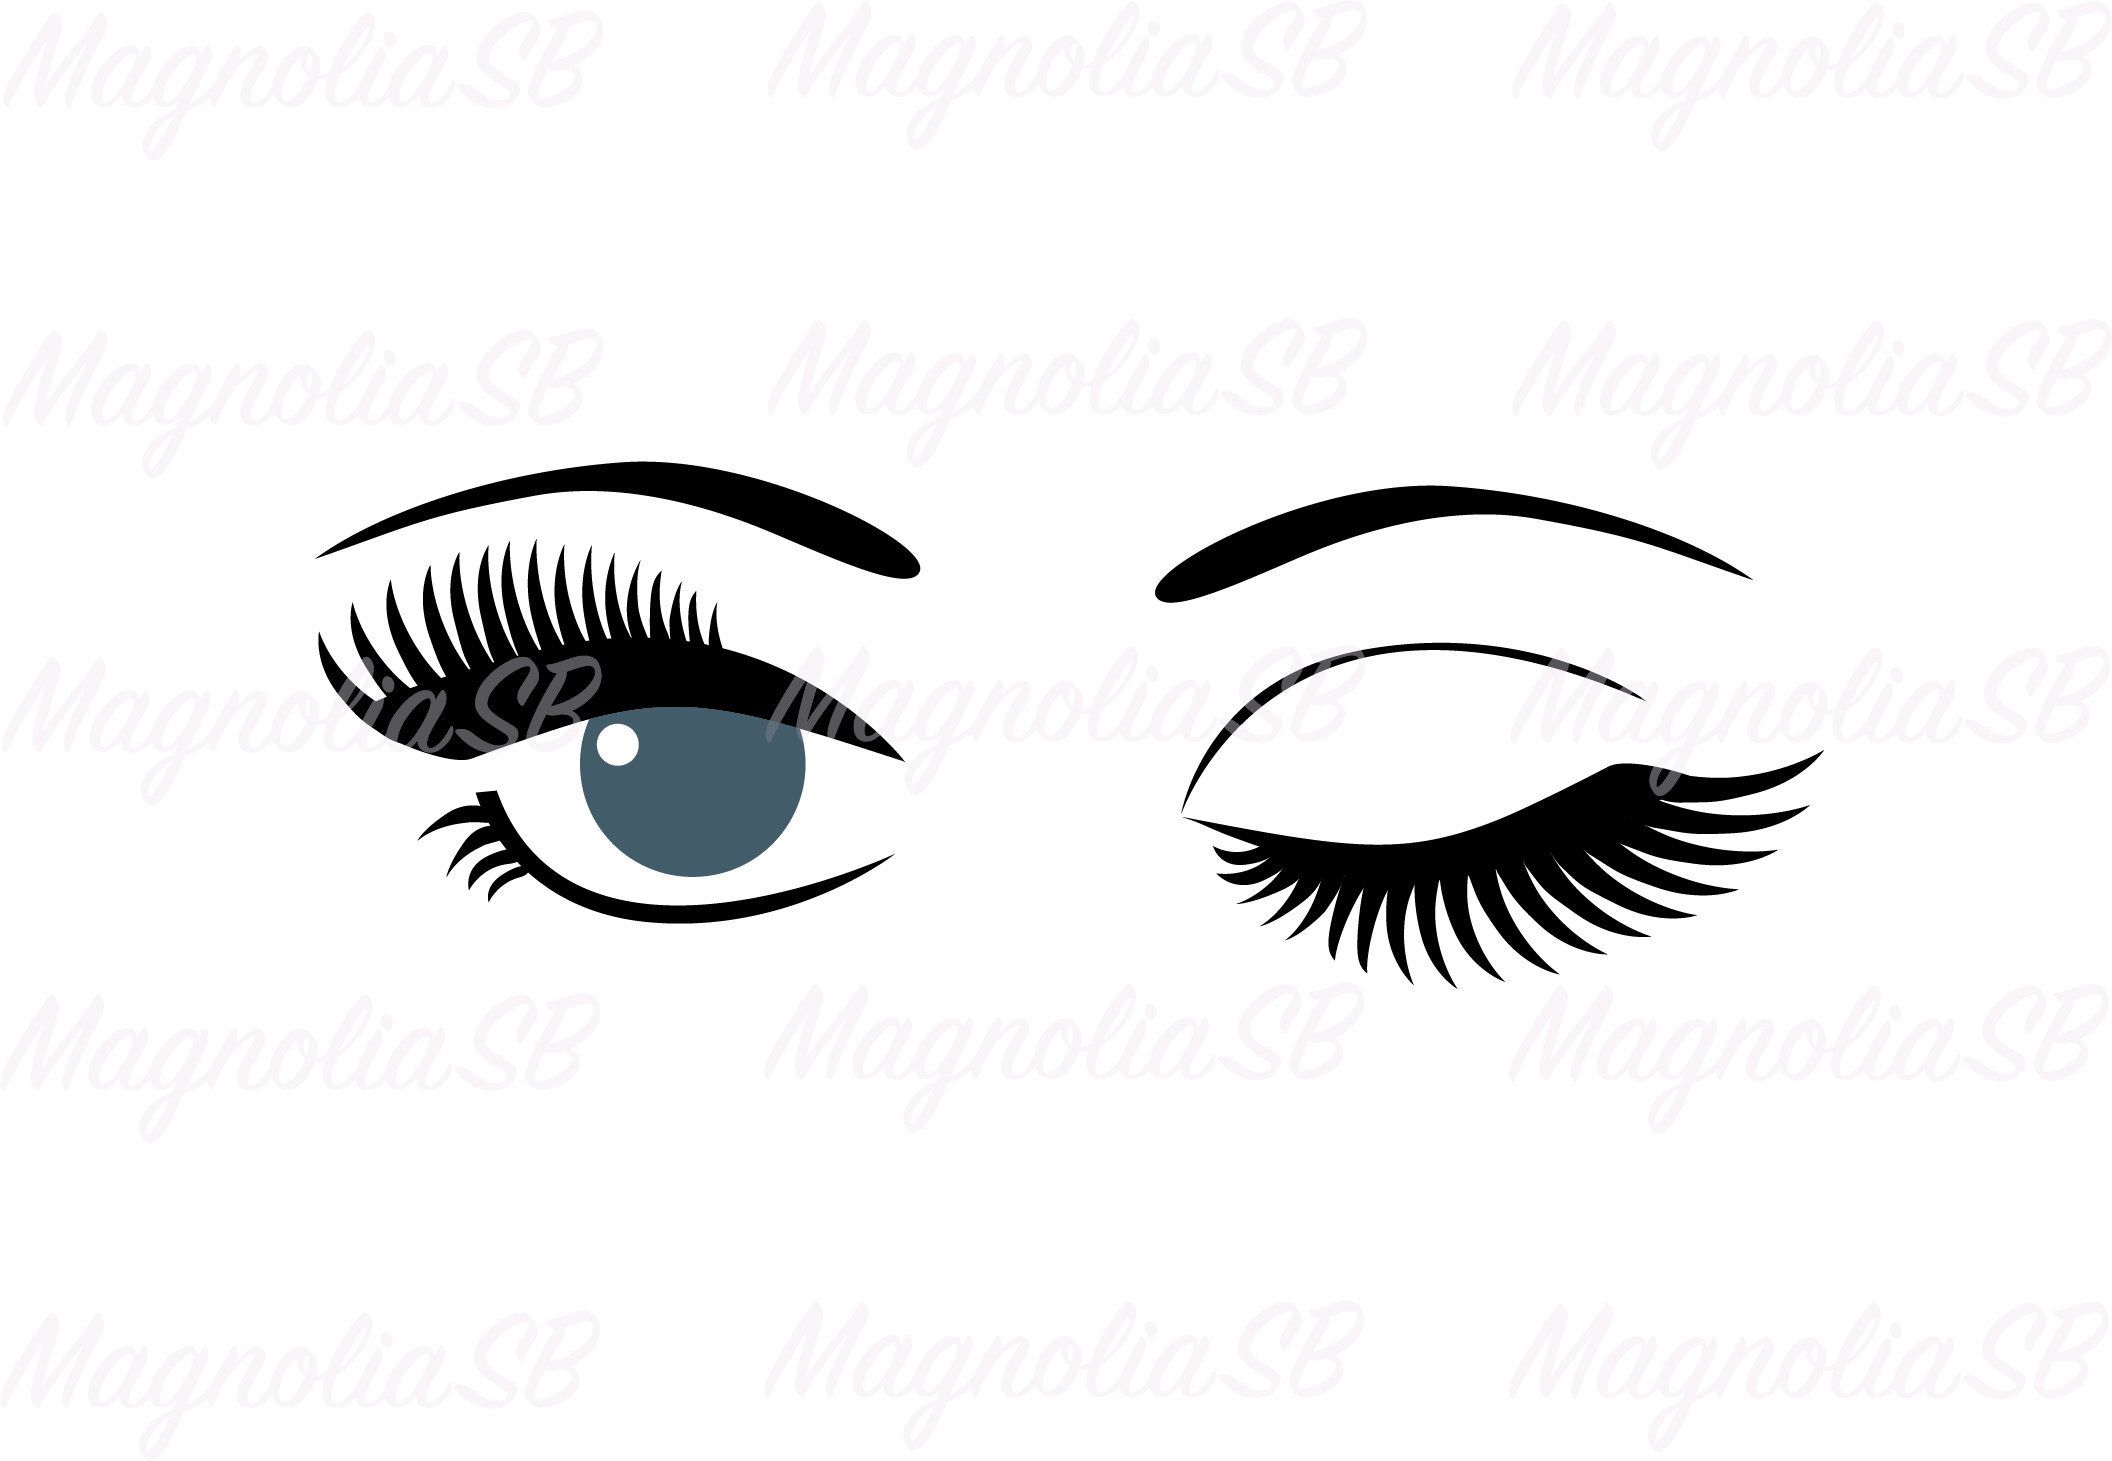 Closed Eyes With Lashes And Brows Free Vector Icons Designed By Freepik Free Icons Closed Eyes Monster Coloring Pages